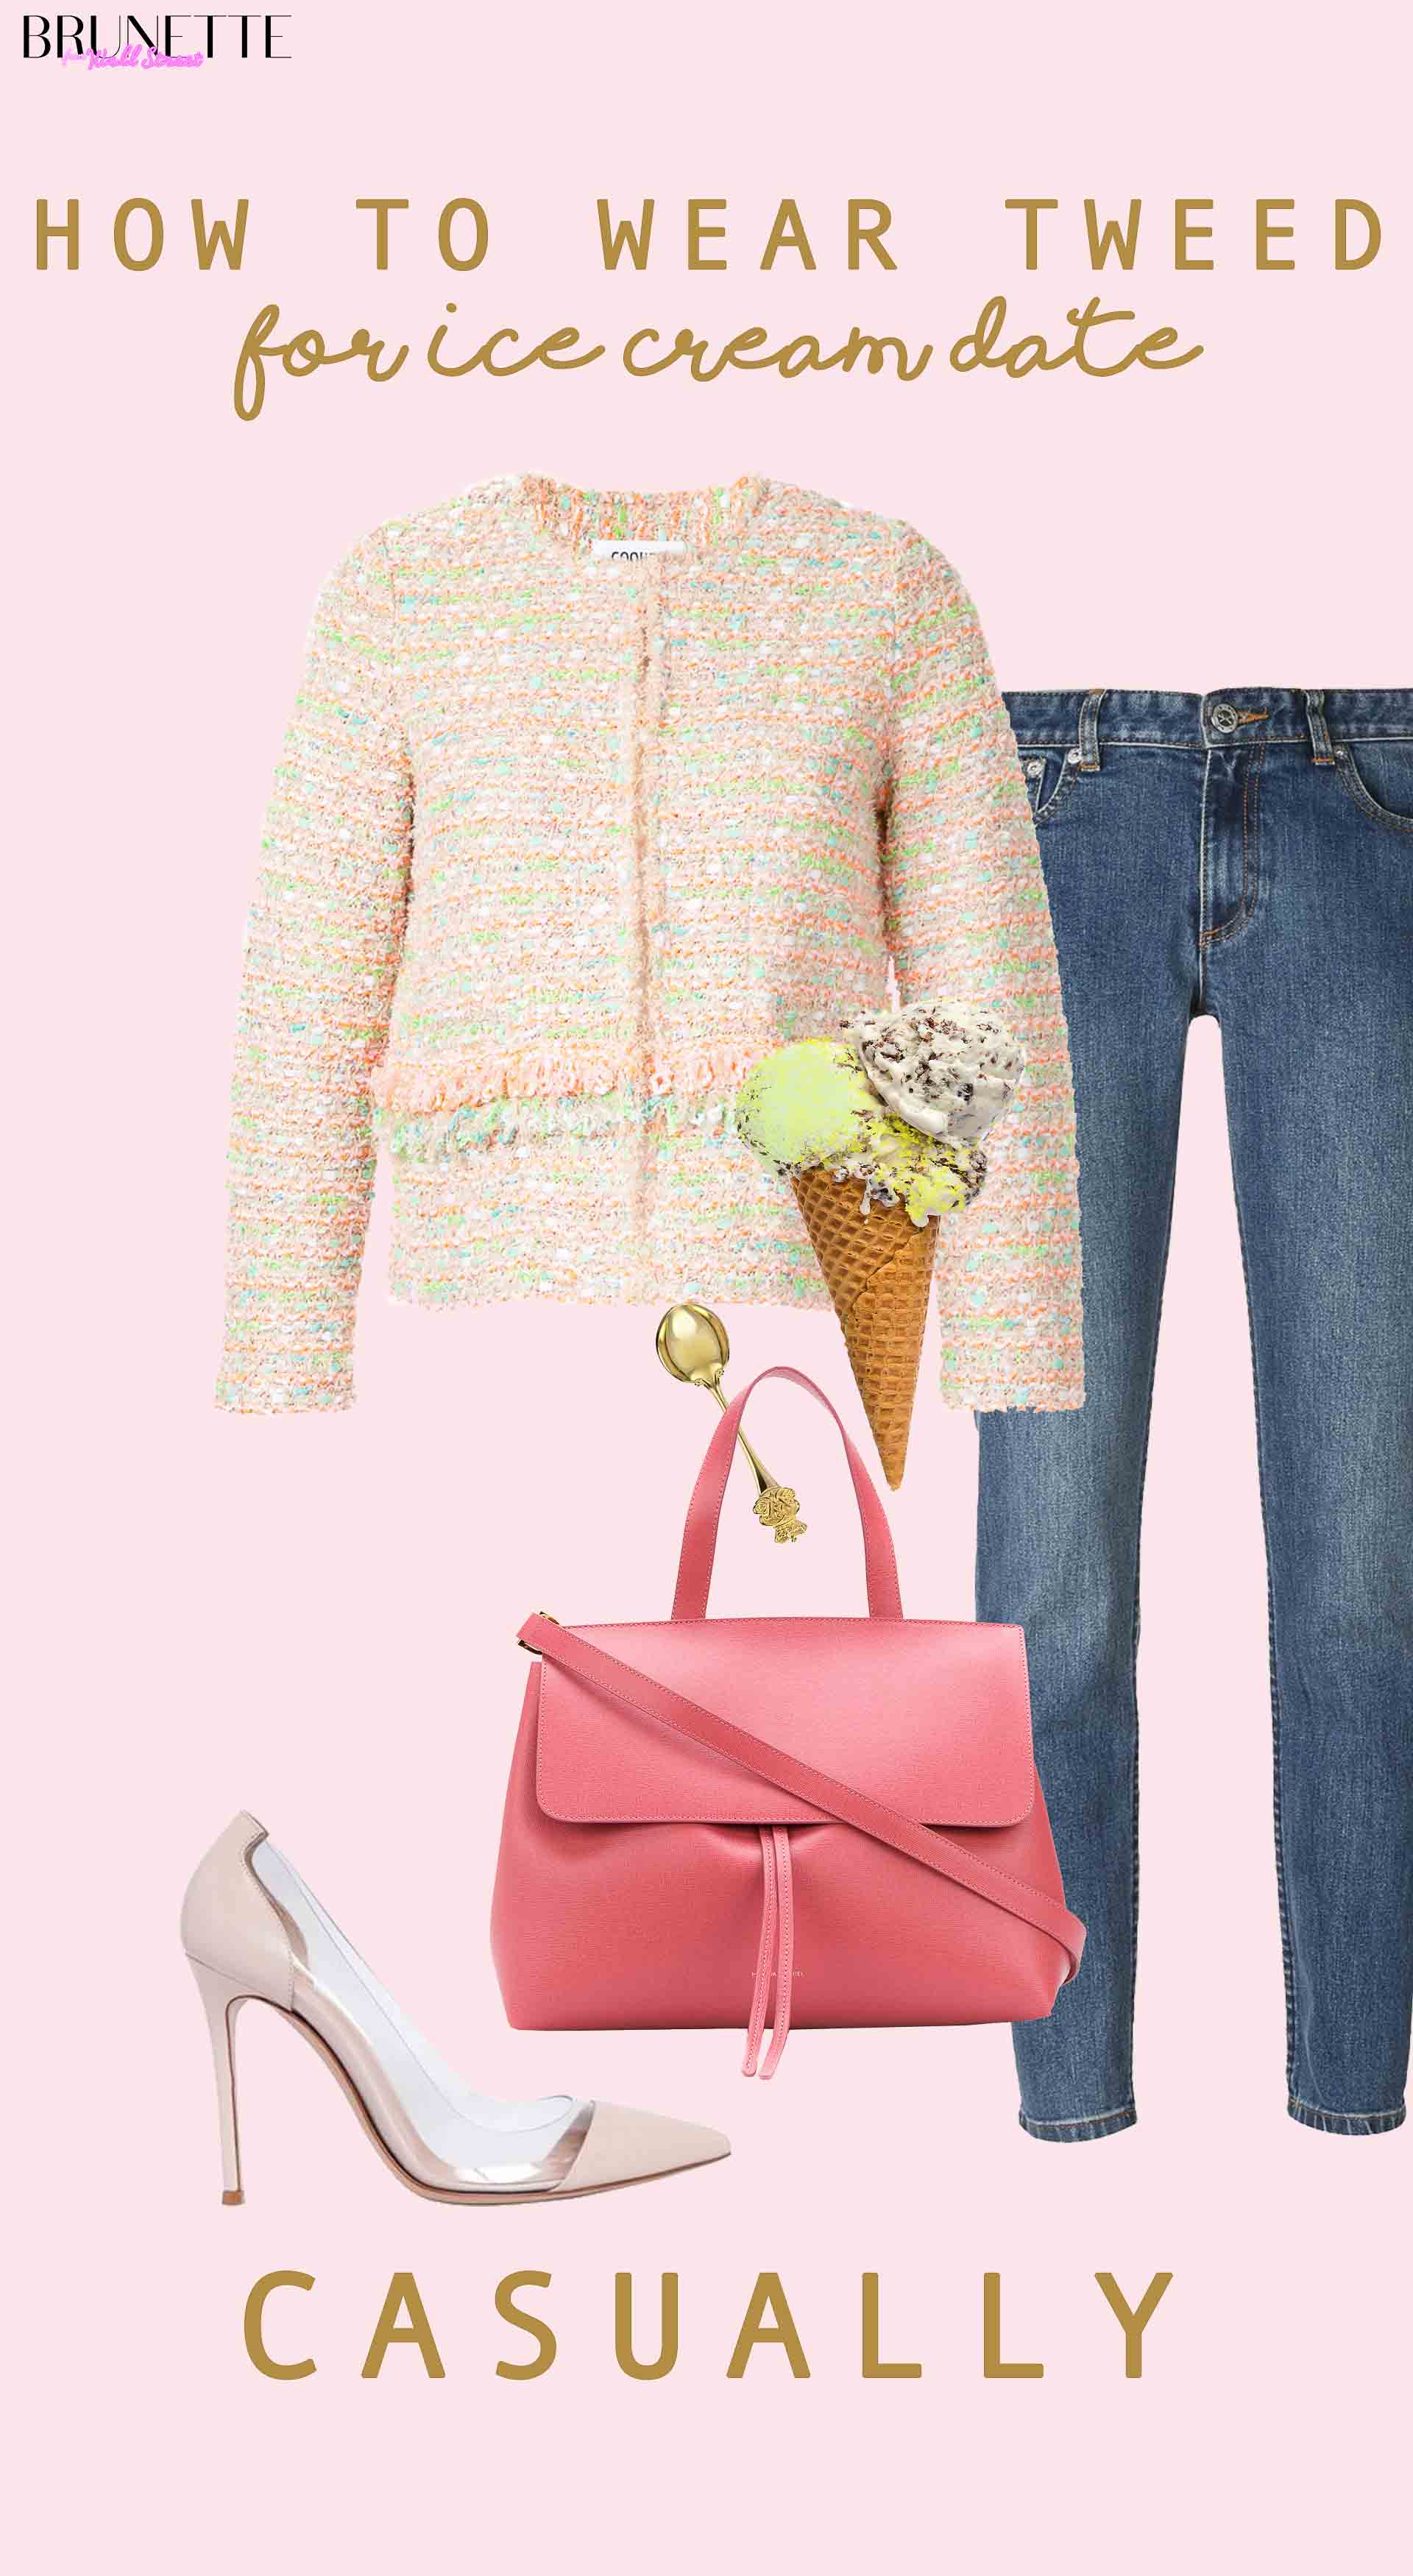 Ladylike Casual spring outfit with text overlay How to wear tweed for ice cream date casually